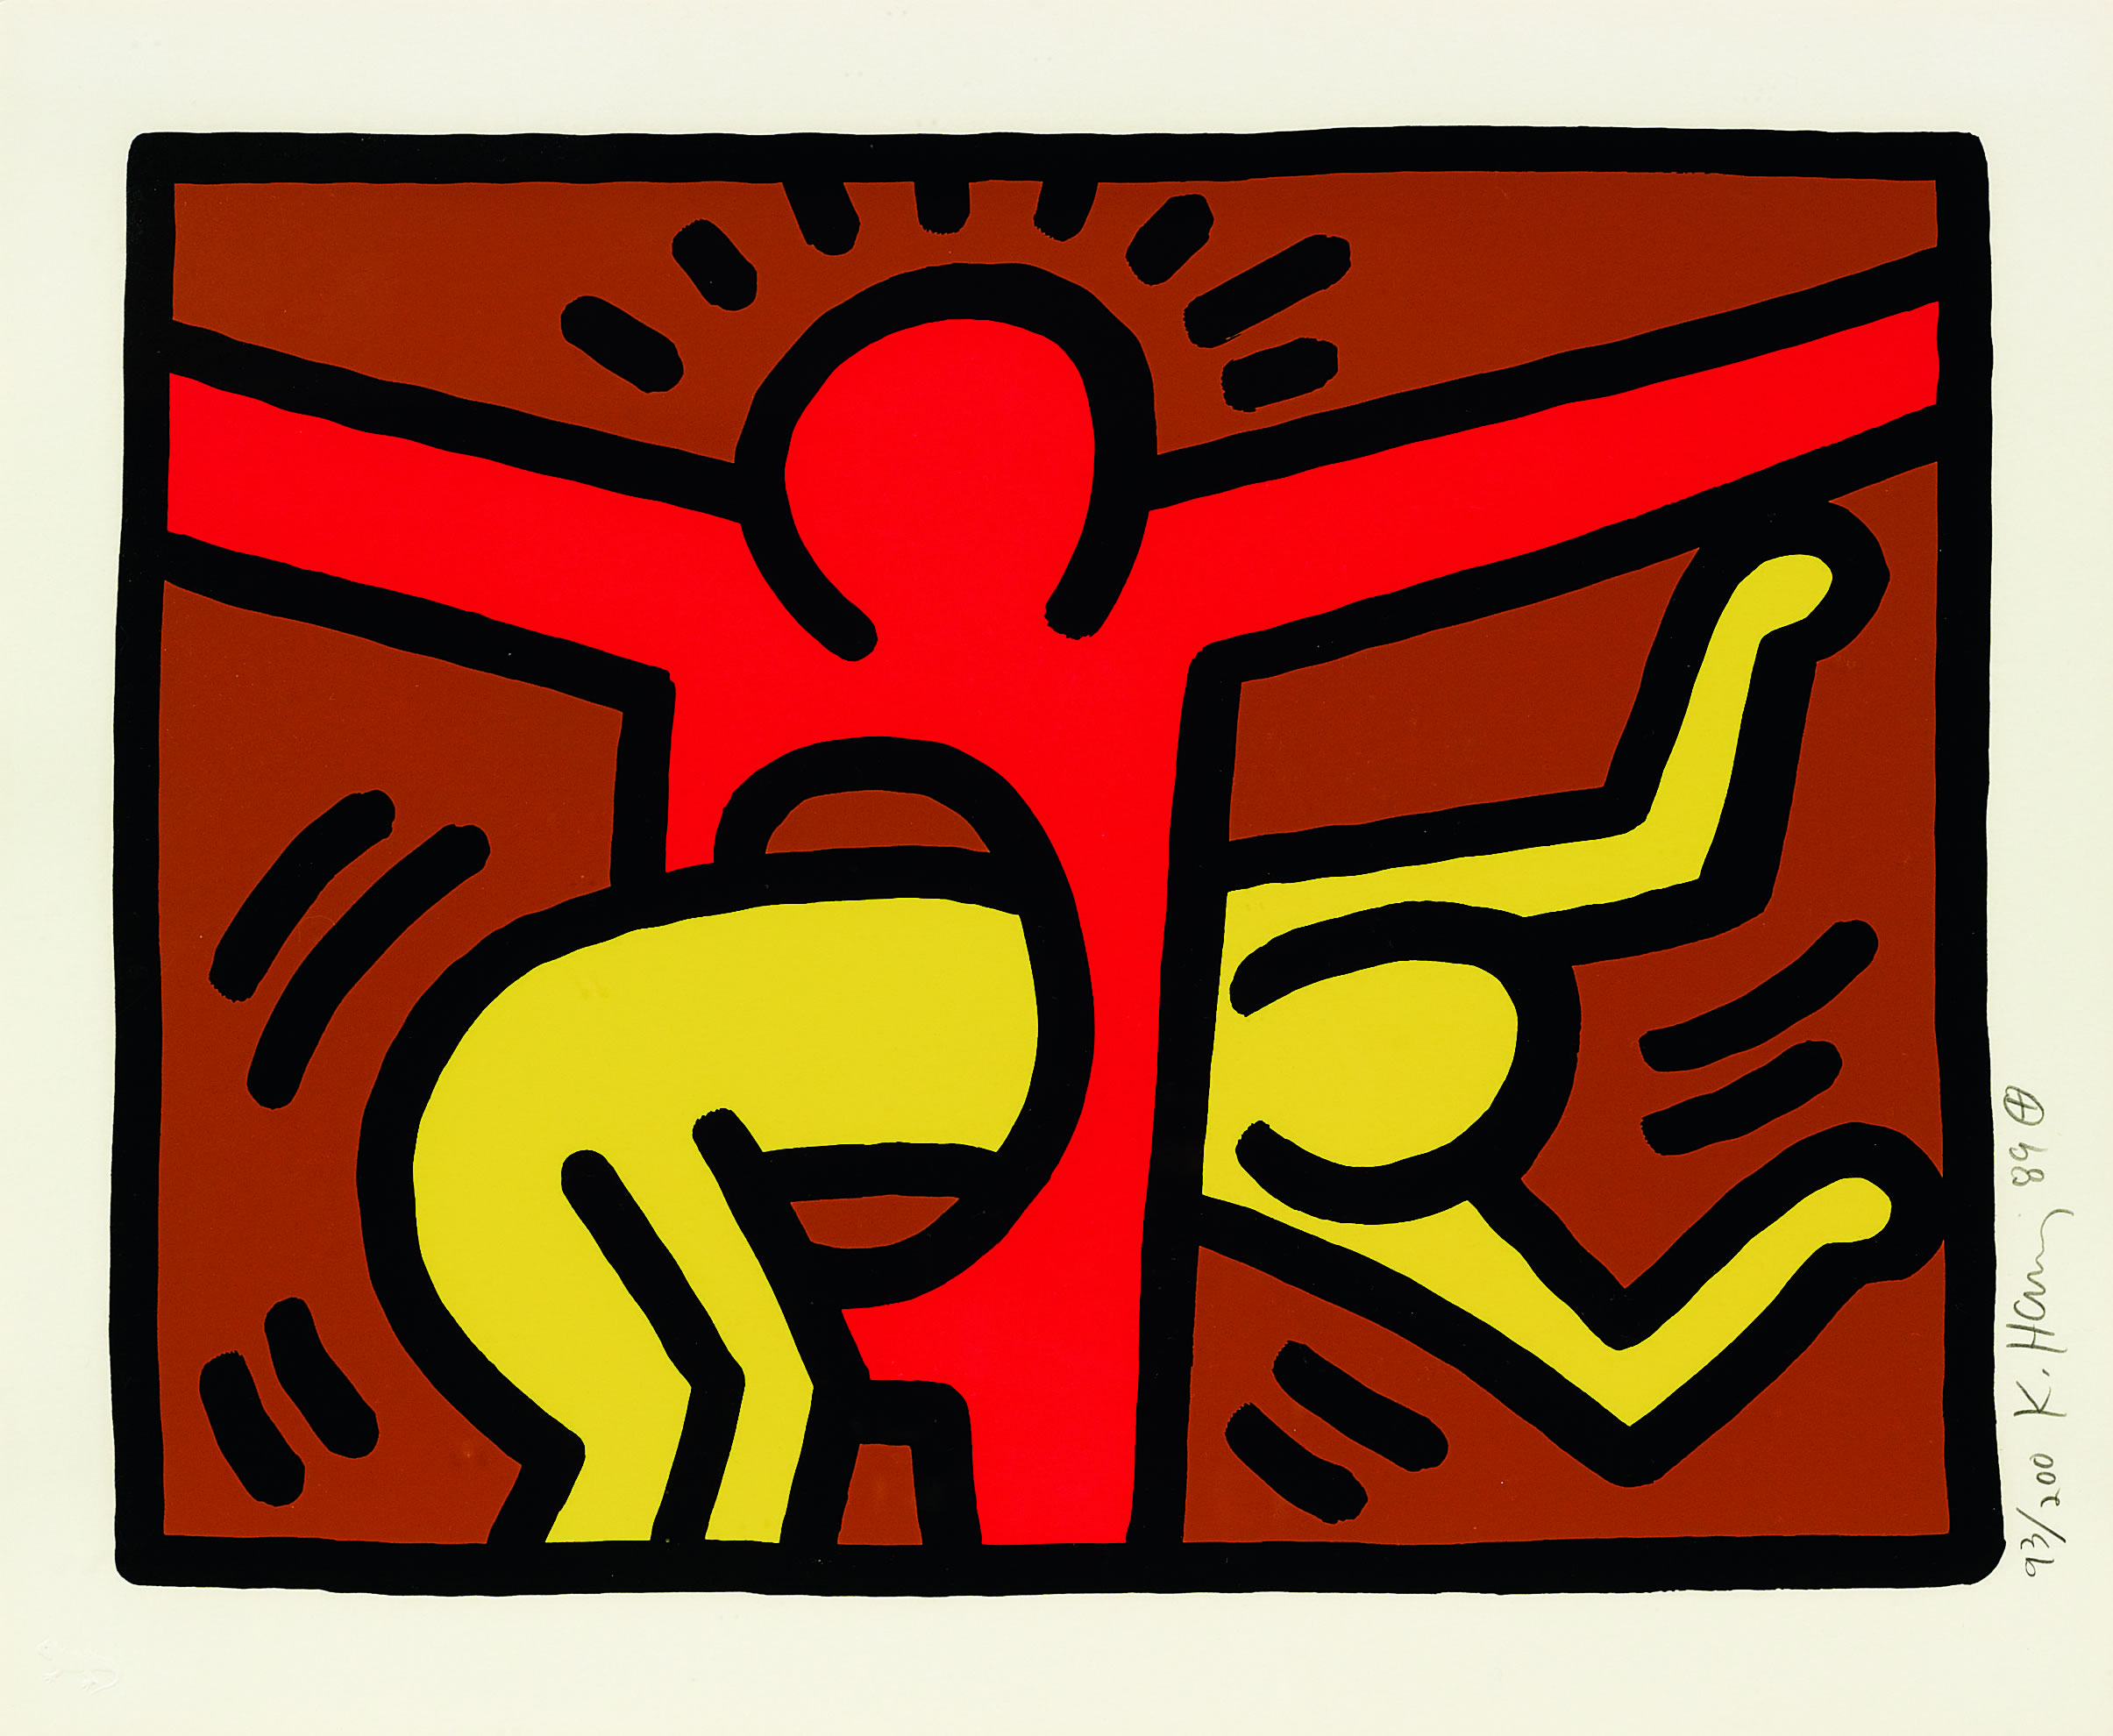 Pop Shop IV (C) by Keith Haring